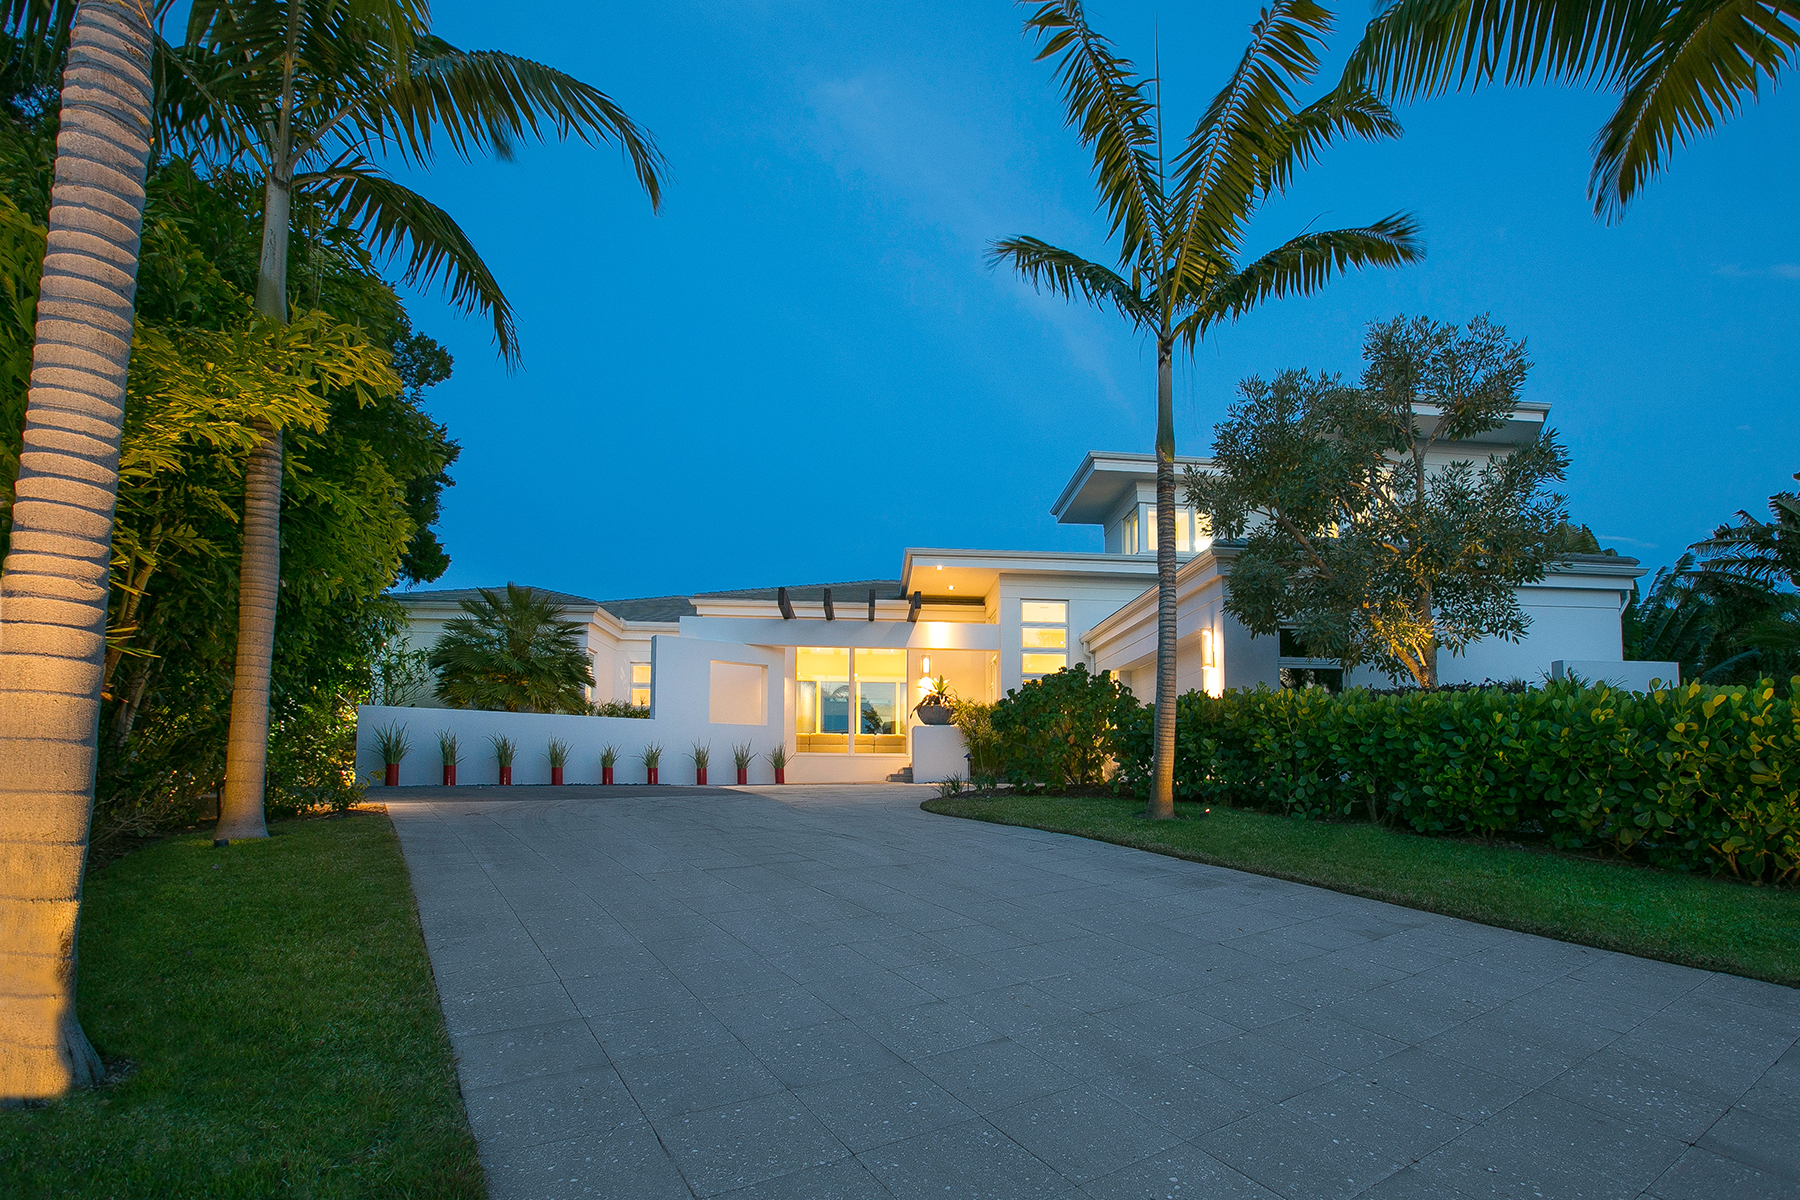 Single Family Home for Sale at BAY ISLES 530 Harbor Gate Way Longboat Key, Florida, 34228 United States